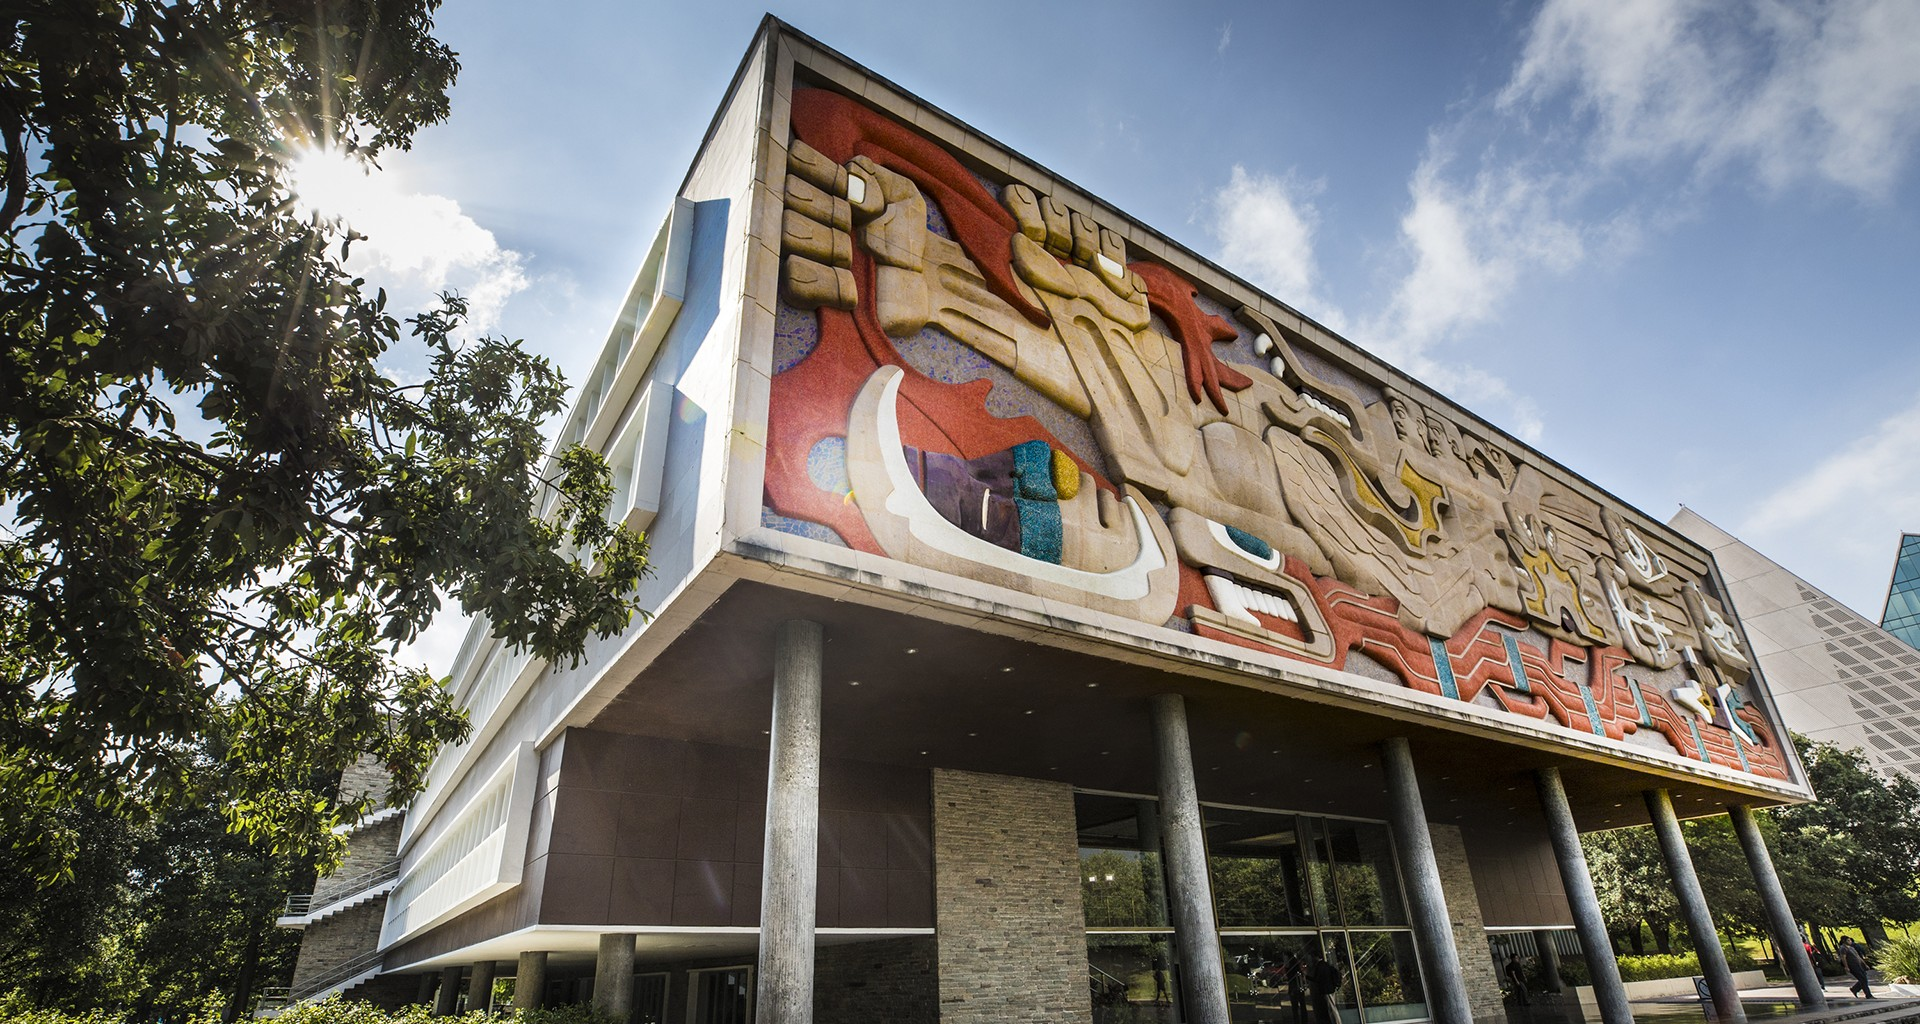 Tec de Monterrey: between the best universities of Latin America and the world